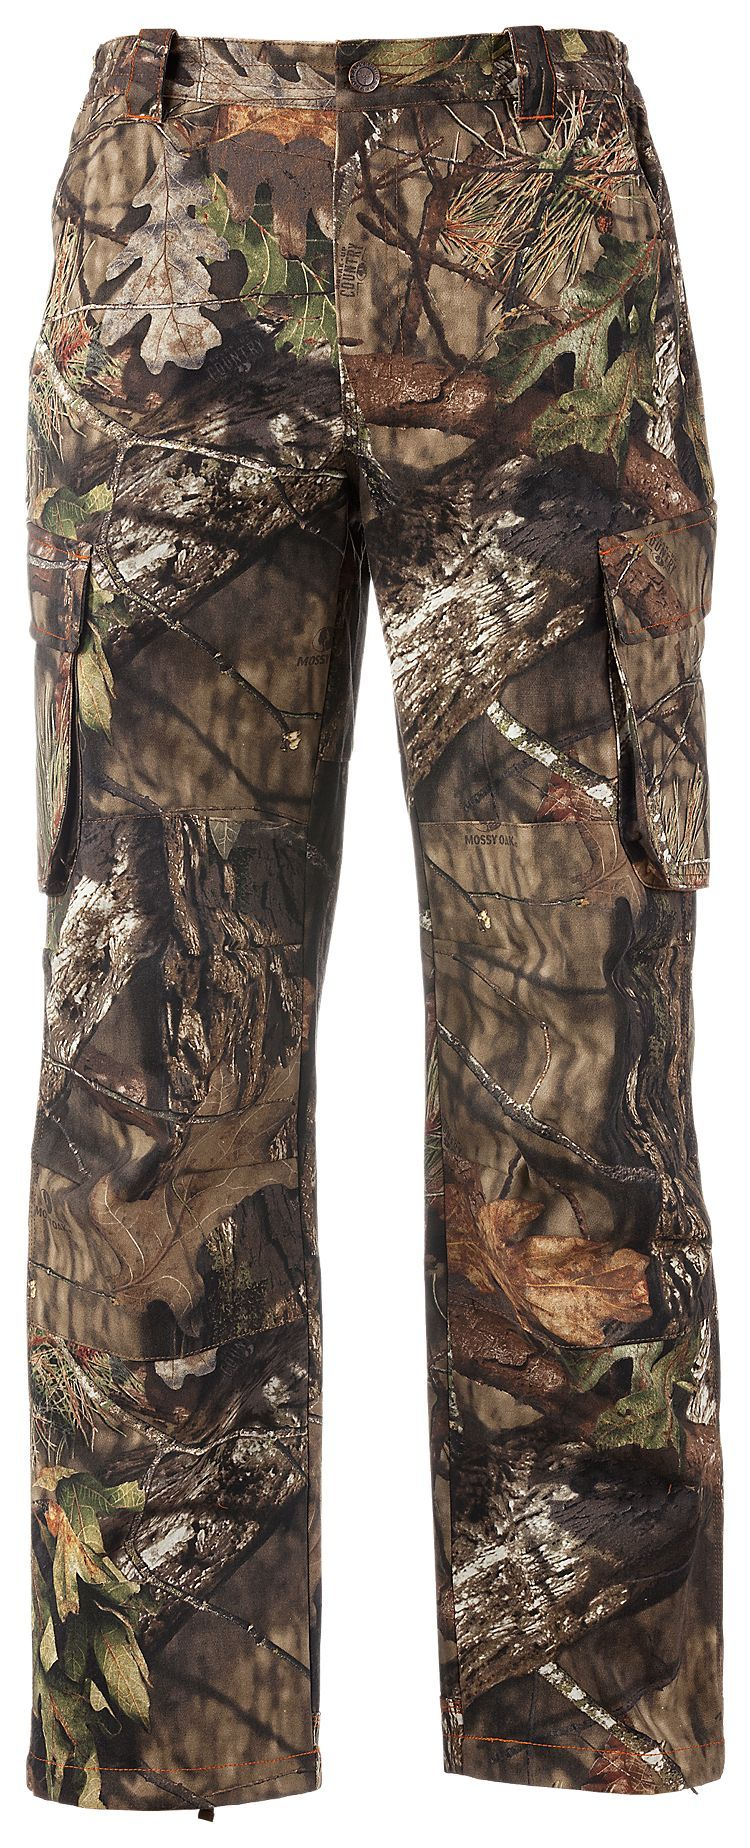 4d35ff1894f37 RedHead Silent-Hide Pants for Men | Bass Pro Shops: The Best Hunting,  Fishing, Camping & Outdoor Gear